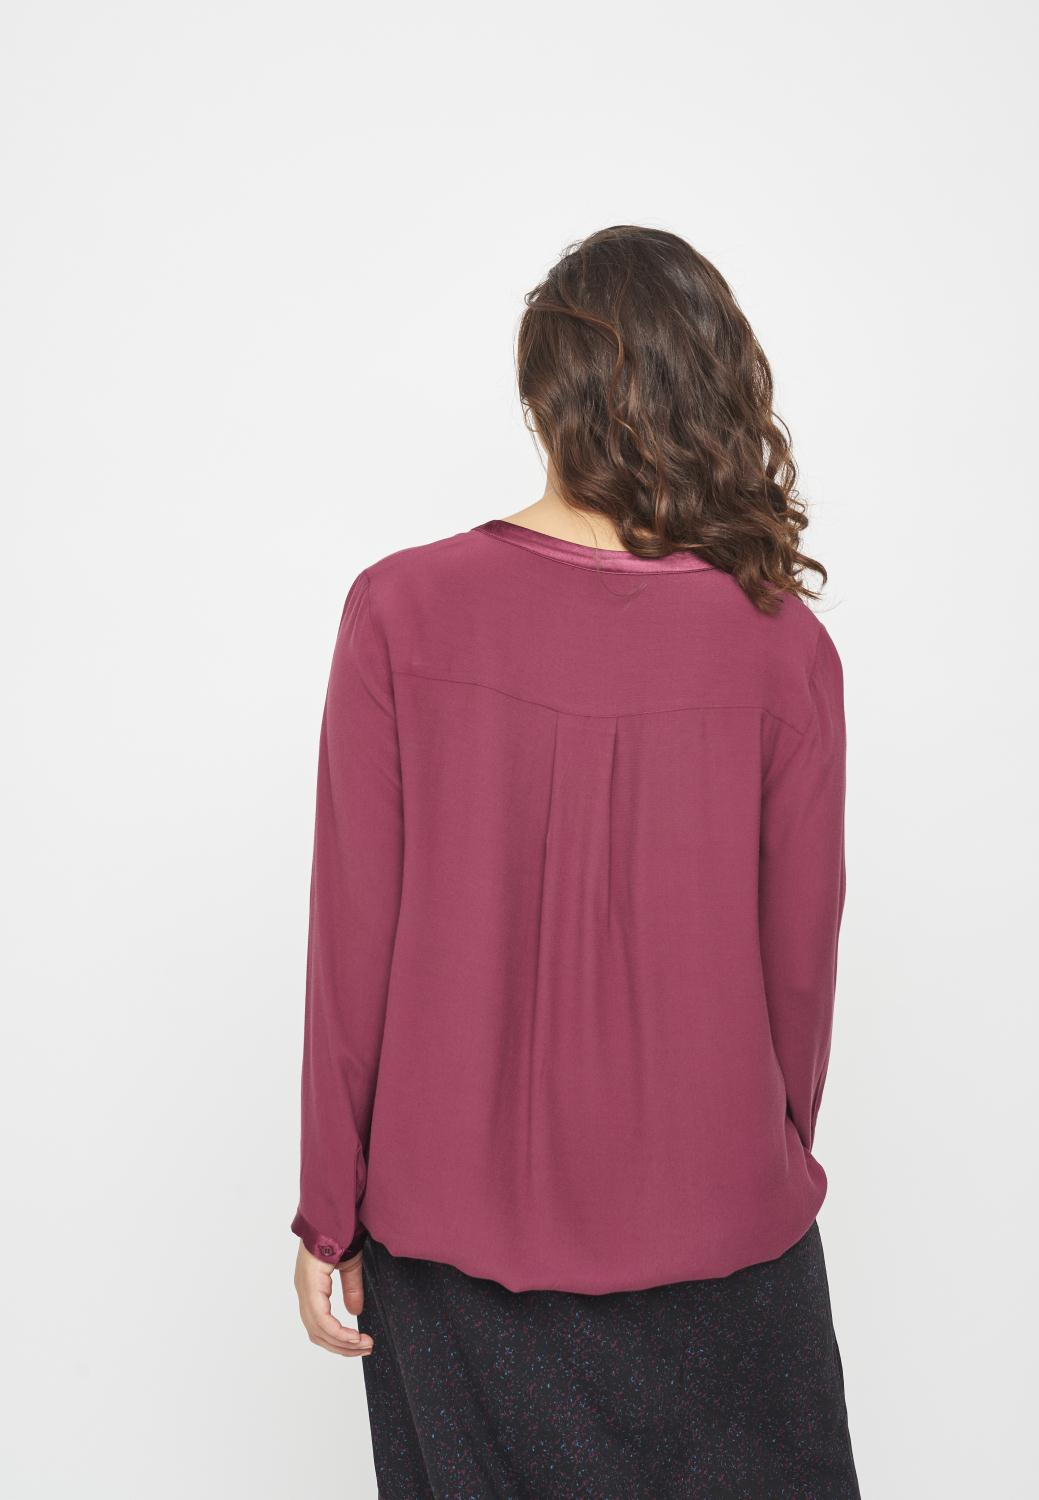 gallery-6670-for-AD3073